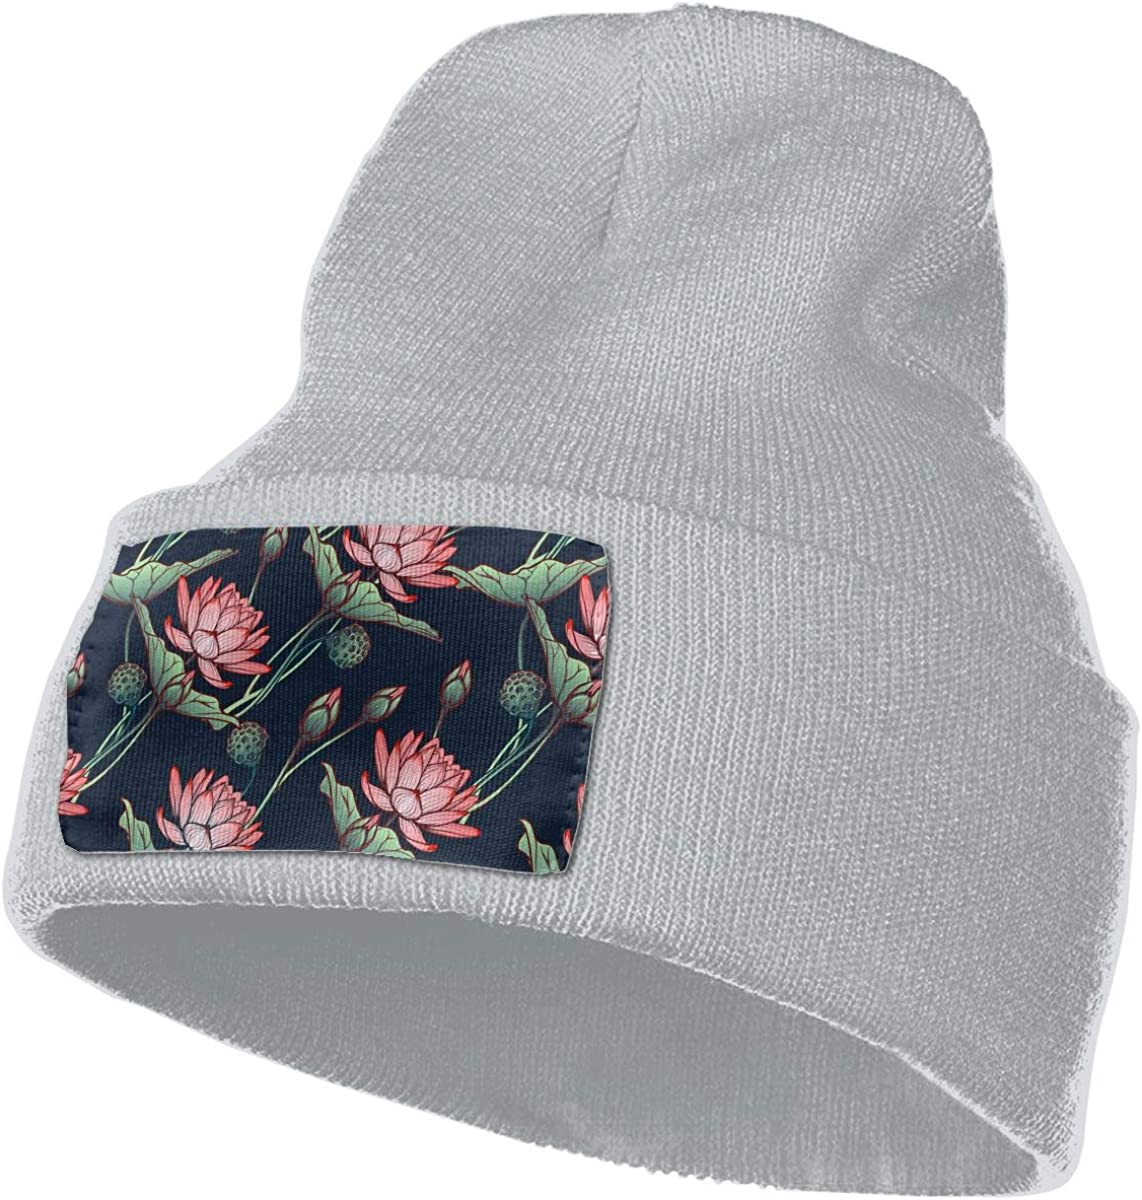 Lotus Floral Unisex Fashion Knitted Hat Luxury Hip-Hop Cap